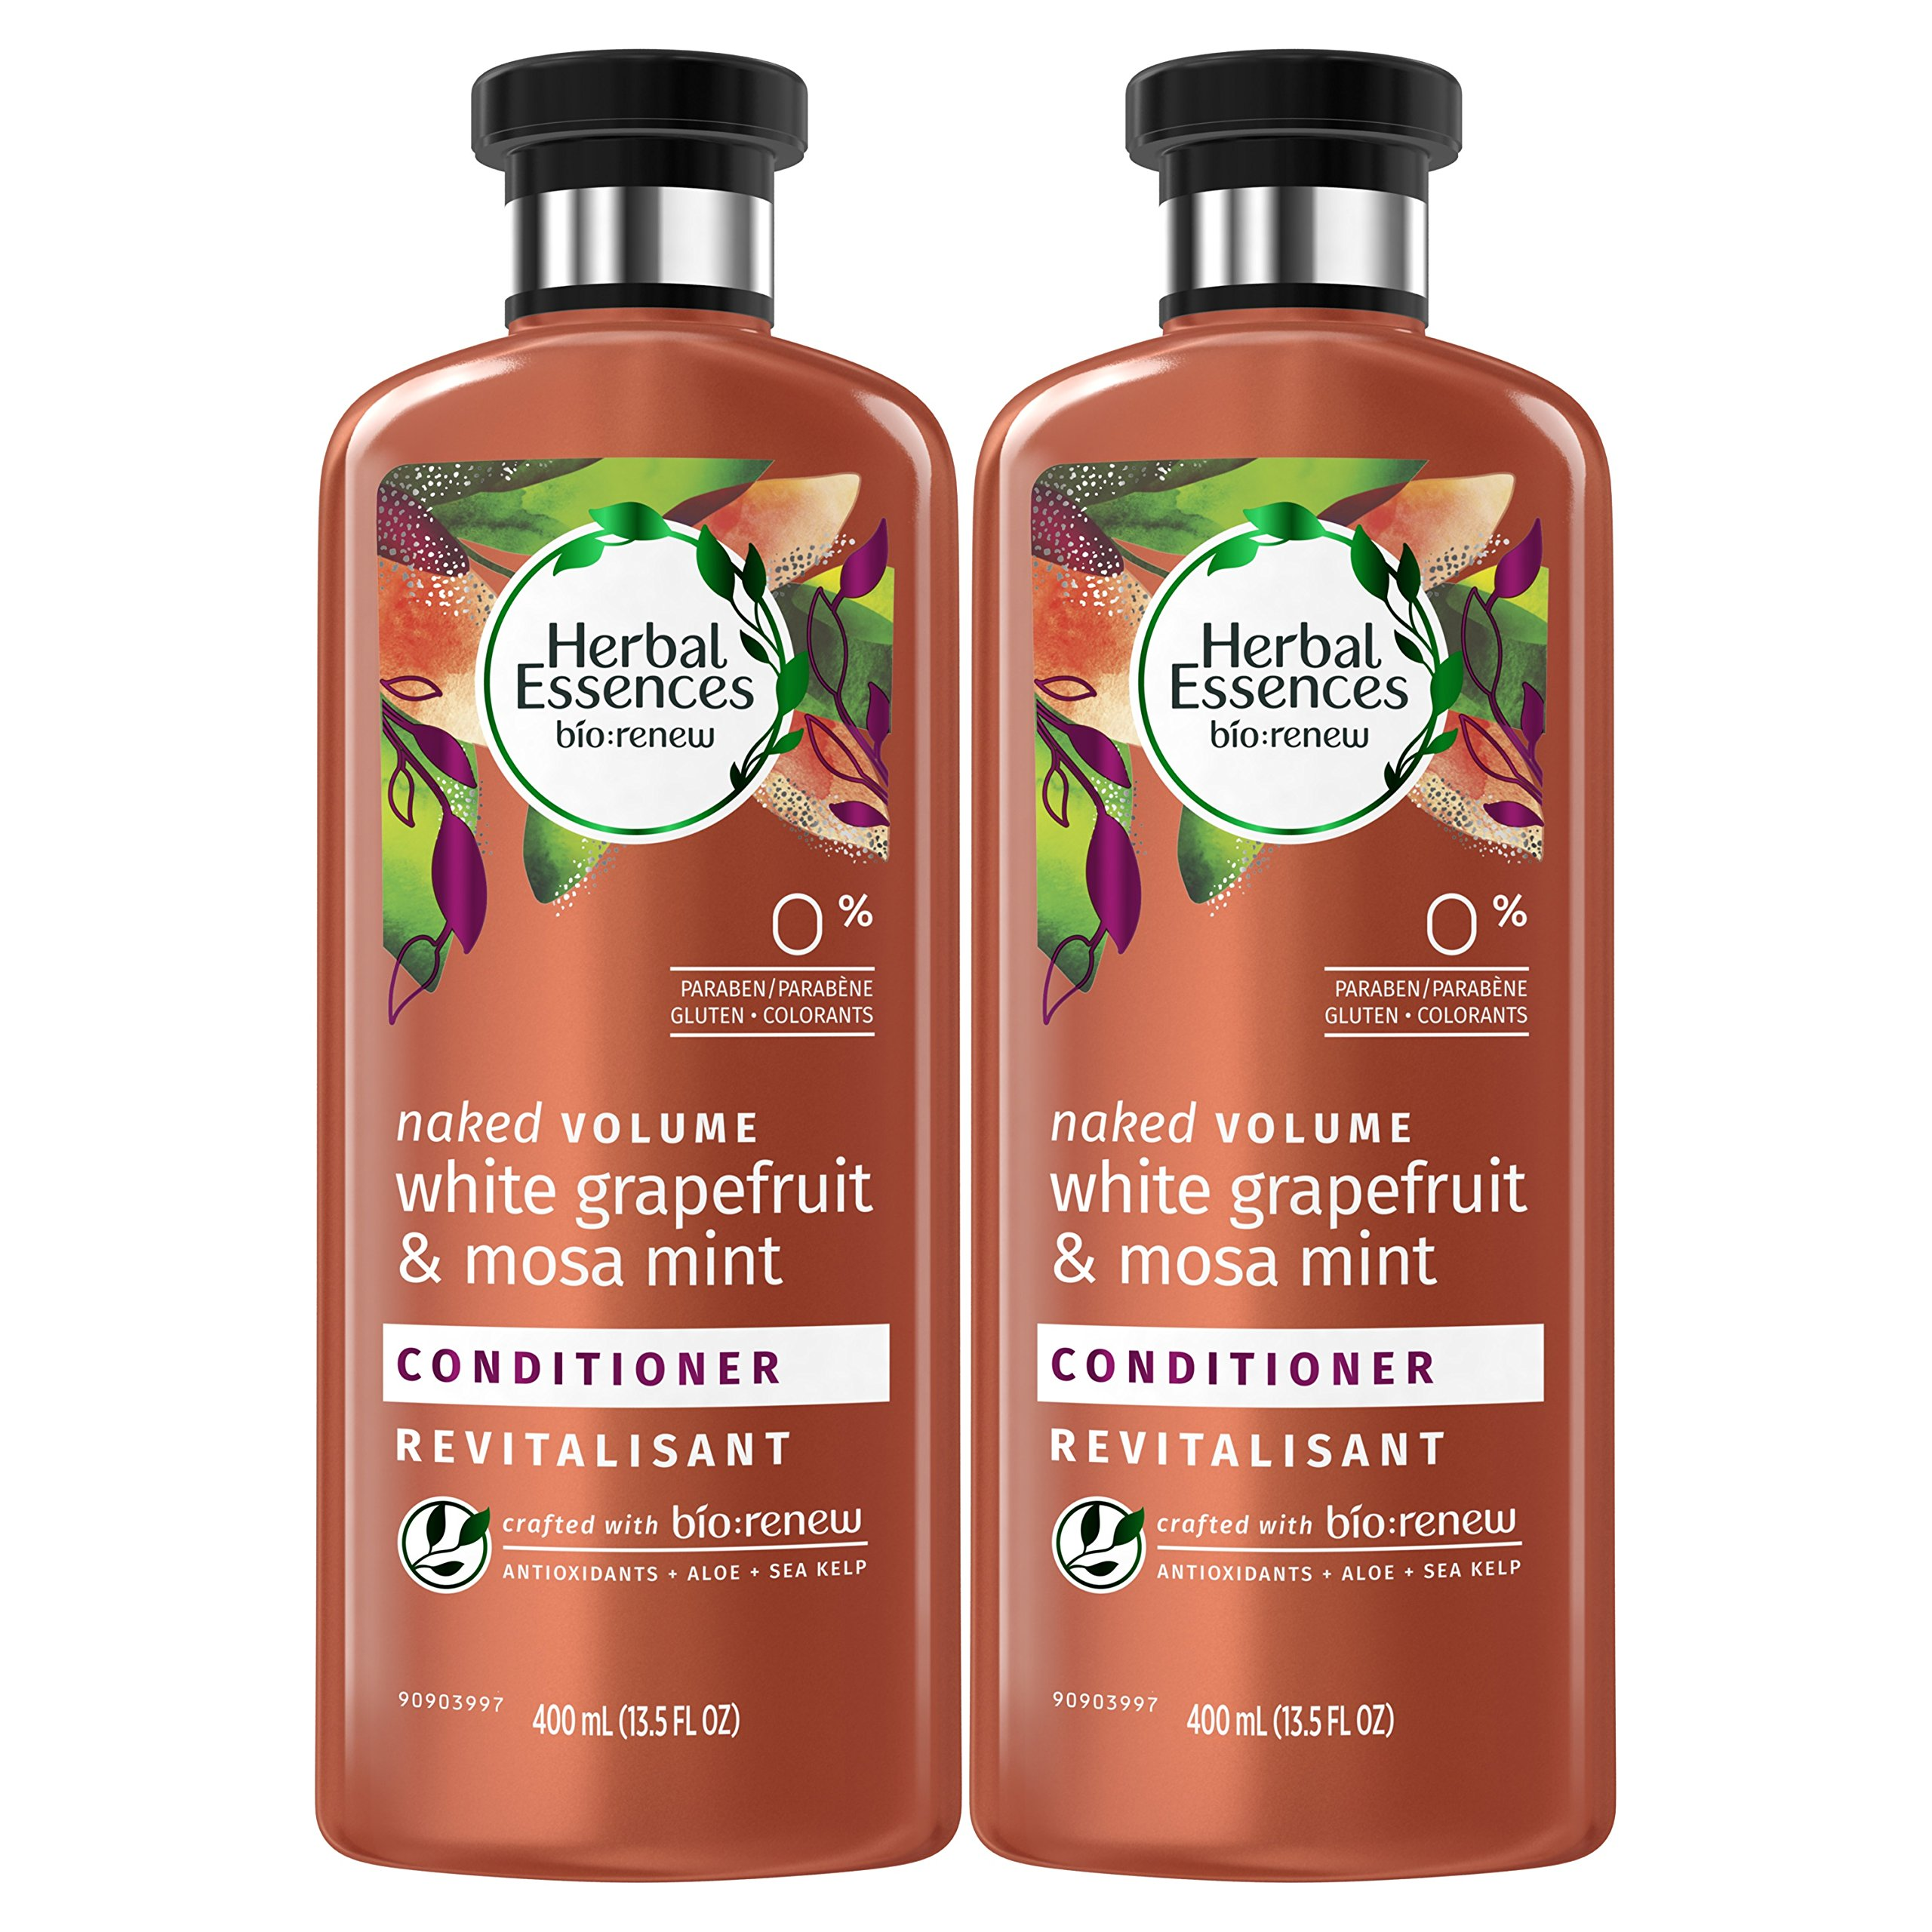 Herbal Essences Bio:renew White Grapefruit & Mosa Mint Naked Volume Conditioner, 13.5 Fluid Ounces Paraben Free (Pack of 2)